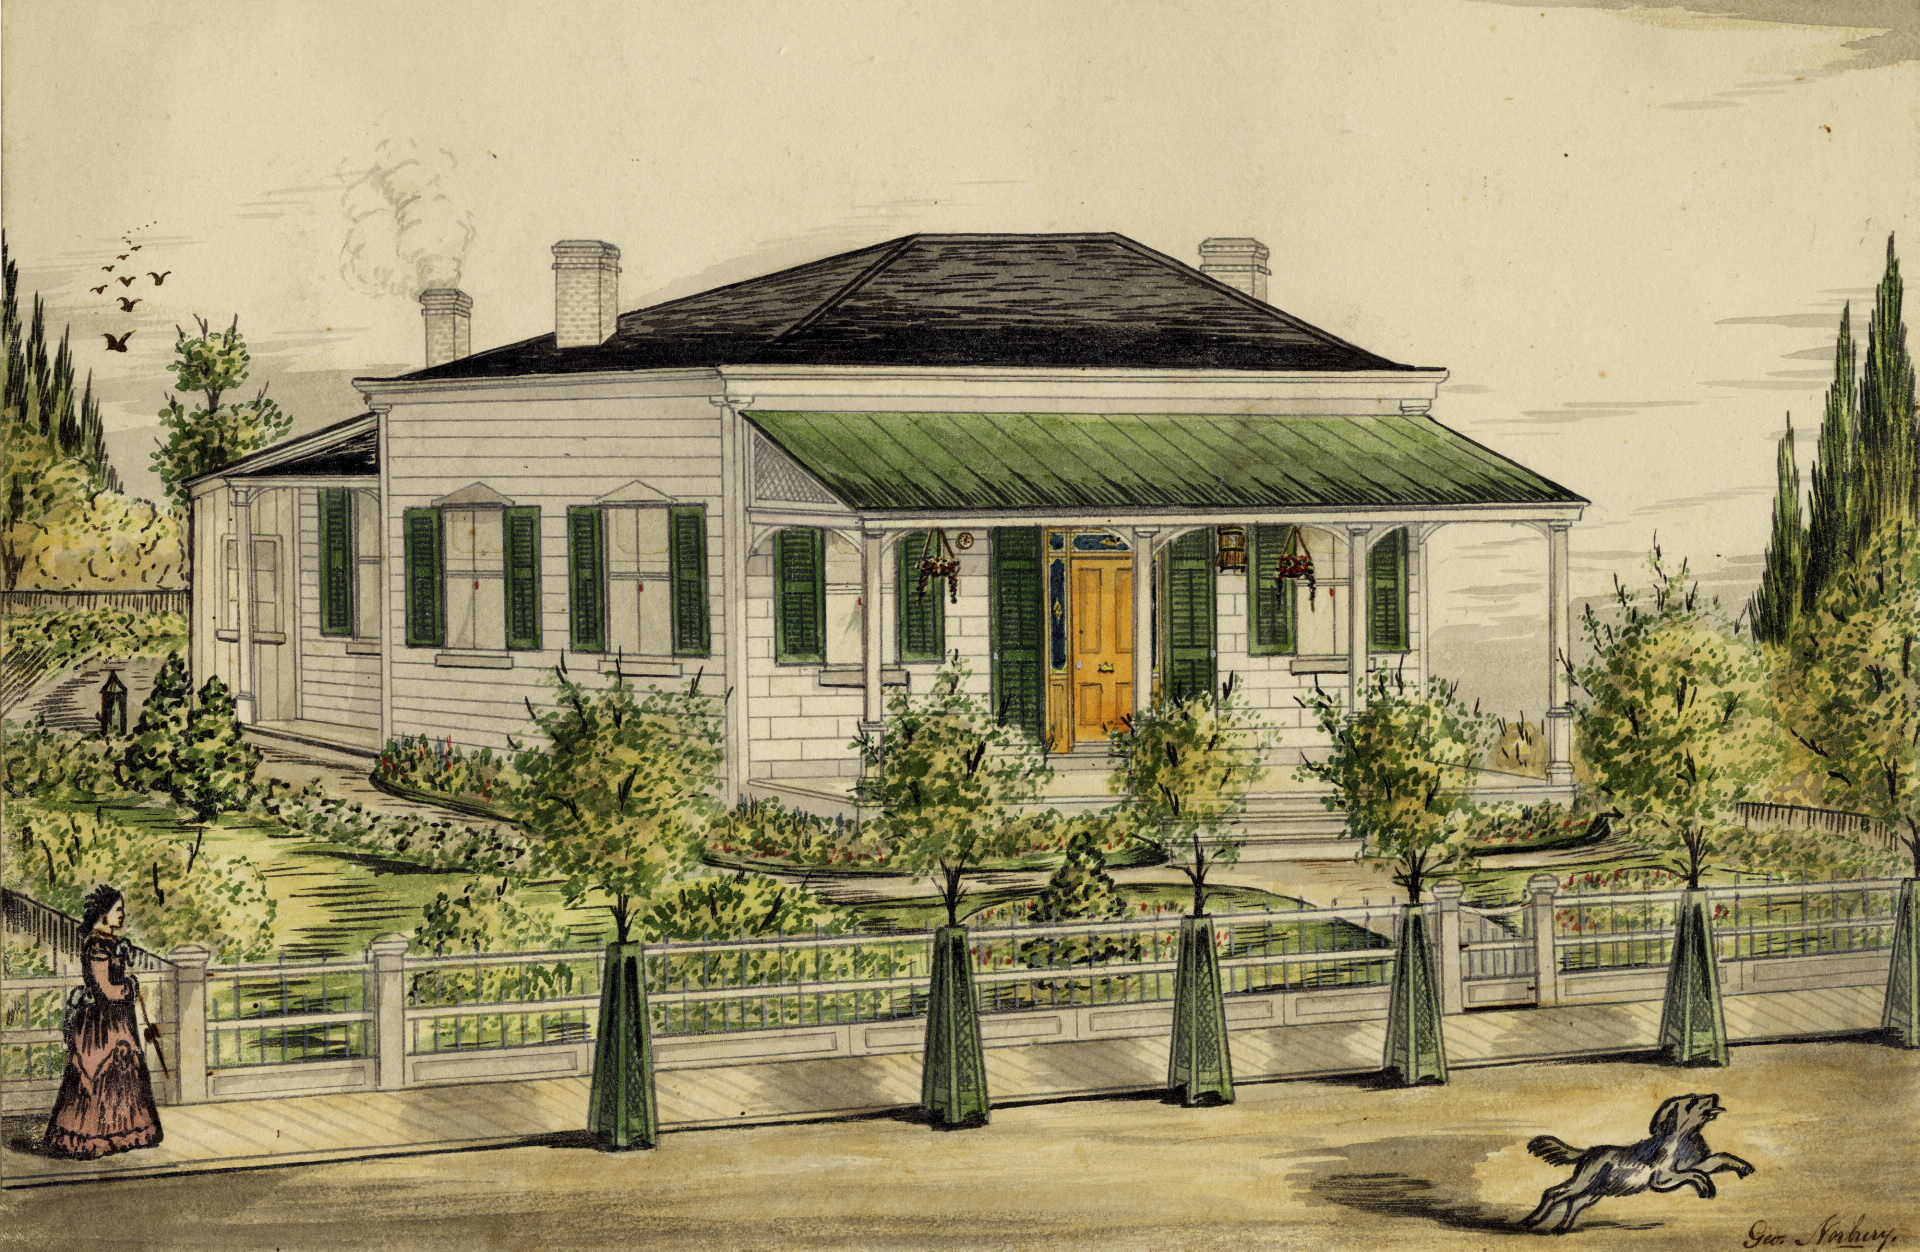 Markland's Toronto home was located at the corner of York and Market, just blocks from the Parliament Buildings that housed the Office of the Inspector General. Testimony indicates that it was here that Markland would dine, consume alcoholic, and converse with young Toronto men. Credit: George Norbury, (1856), Toronto Public Library